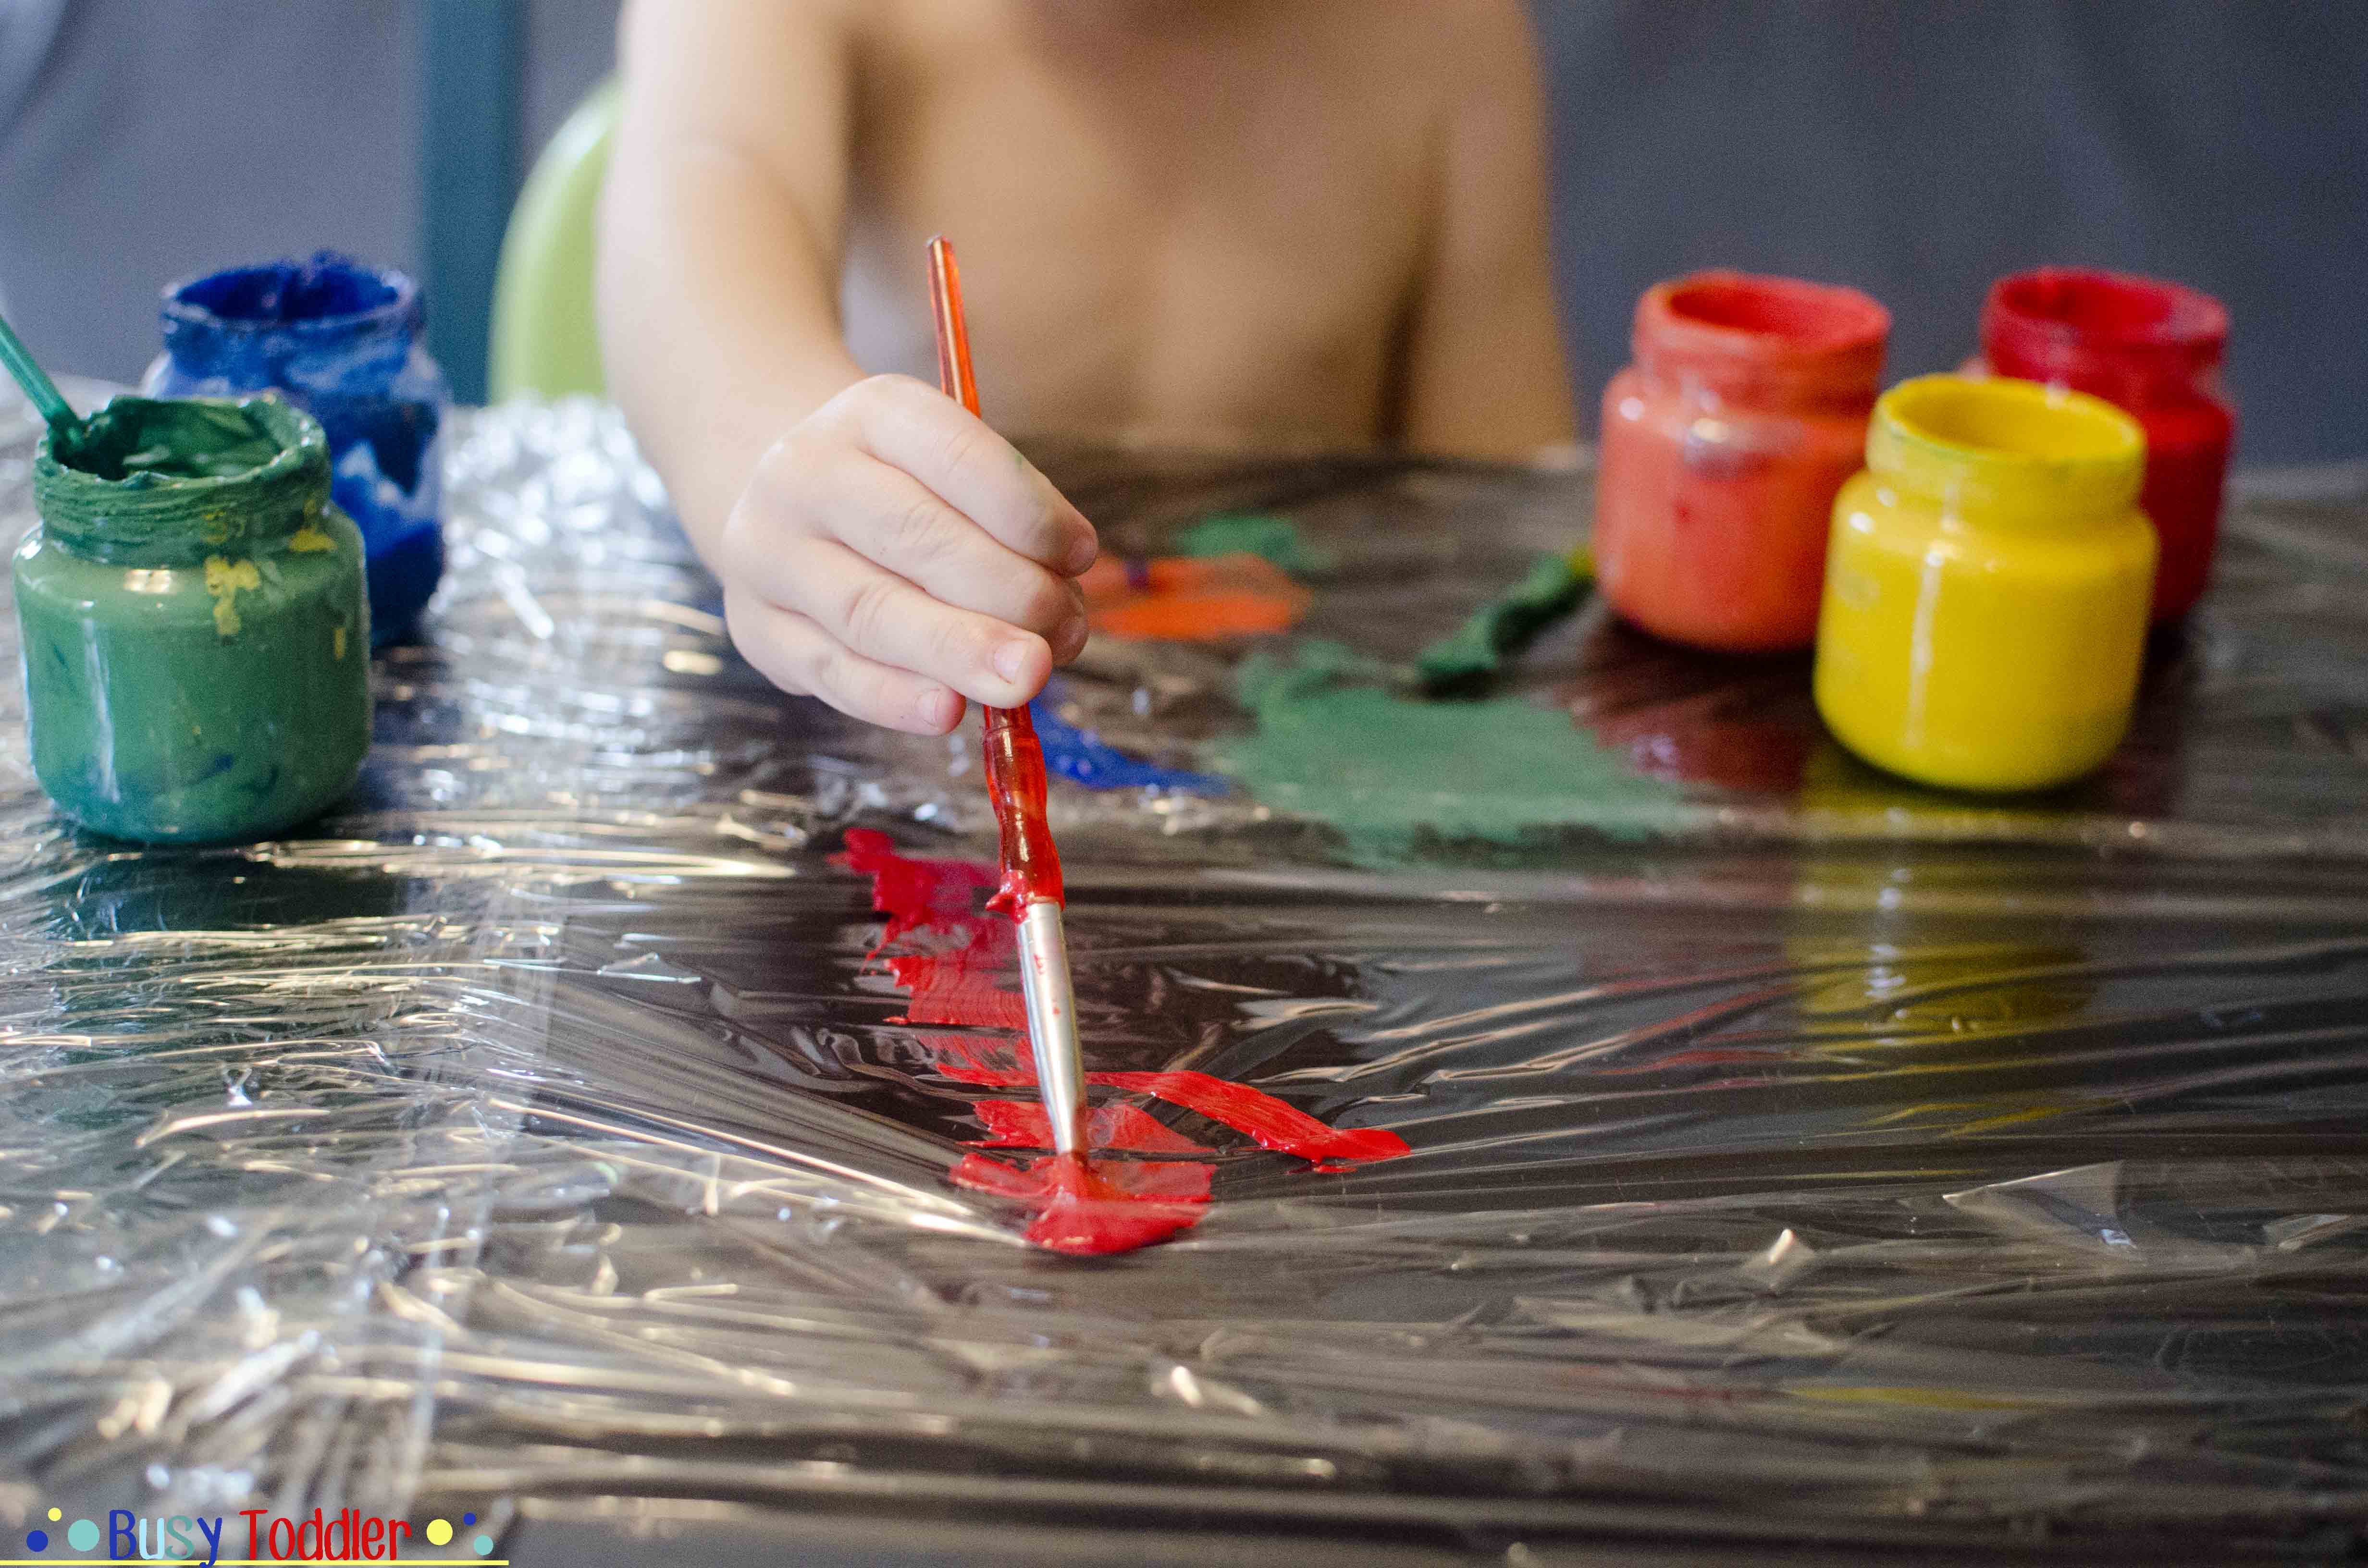 Painting with Toddlers: Tips and Tricks